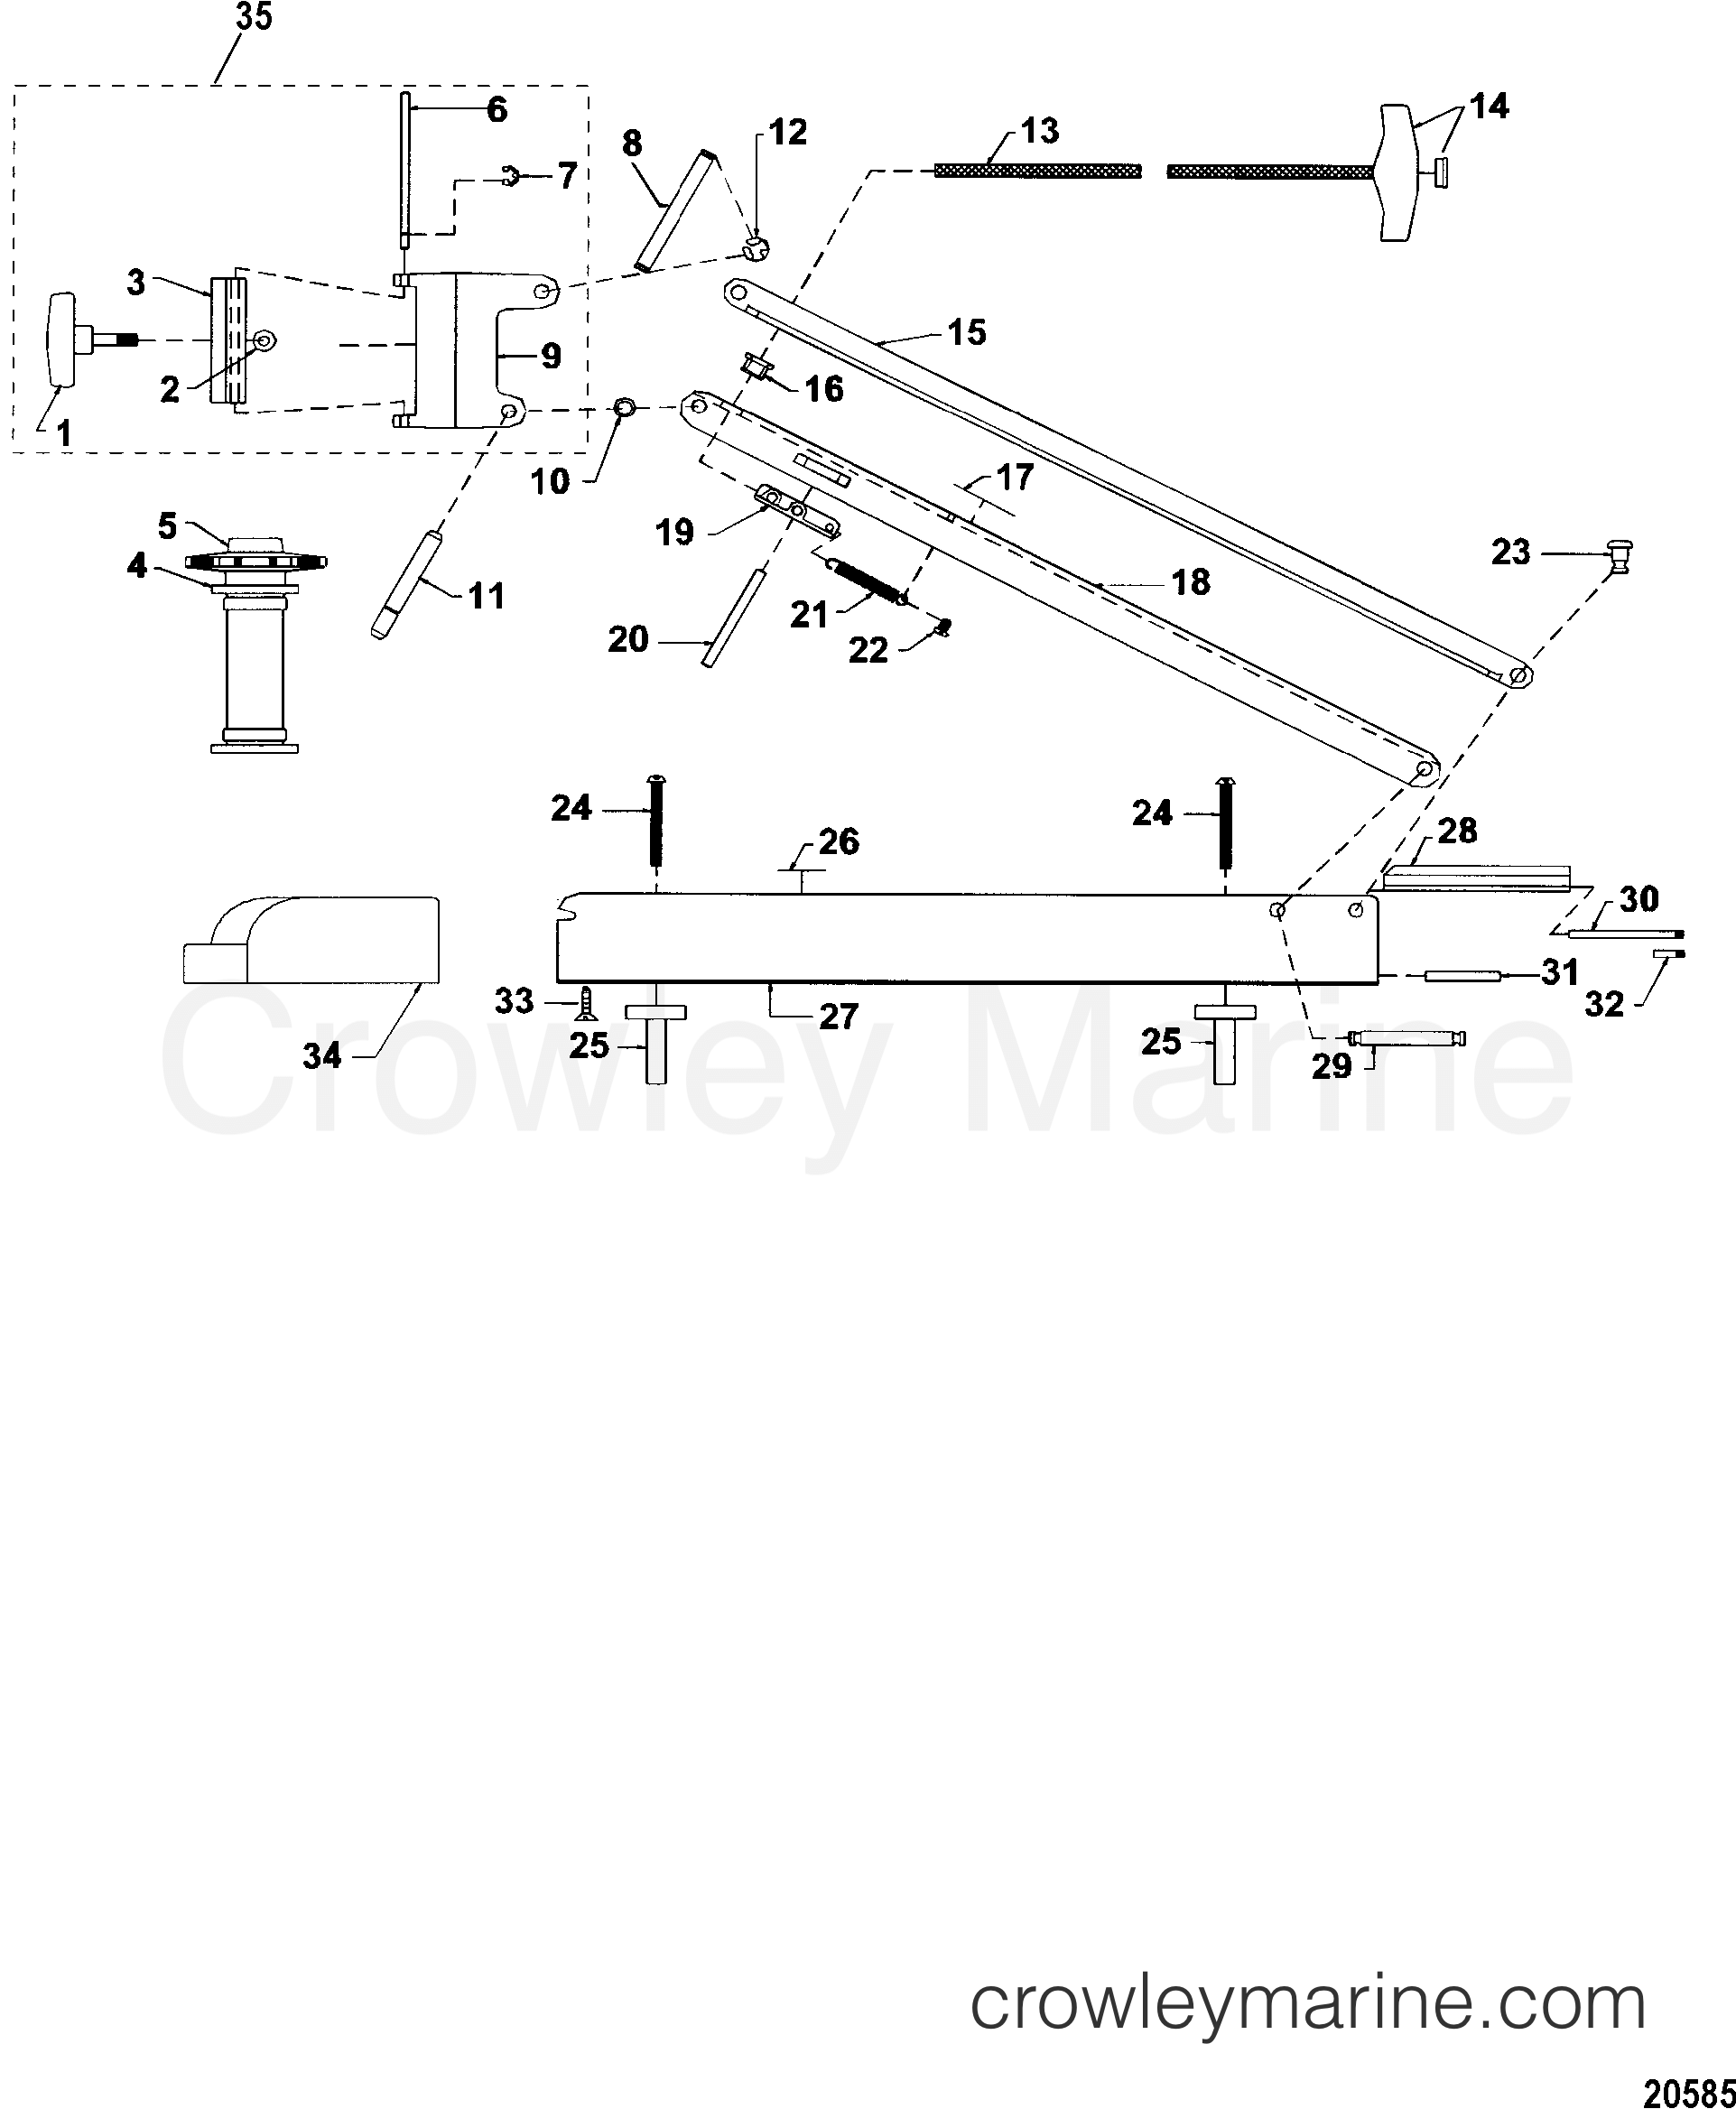 12 24v trolling motor wiring diagram johnson 12 24 trolling motor wiring diagram motorguide pro series parts diagram impremedia net